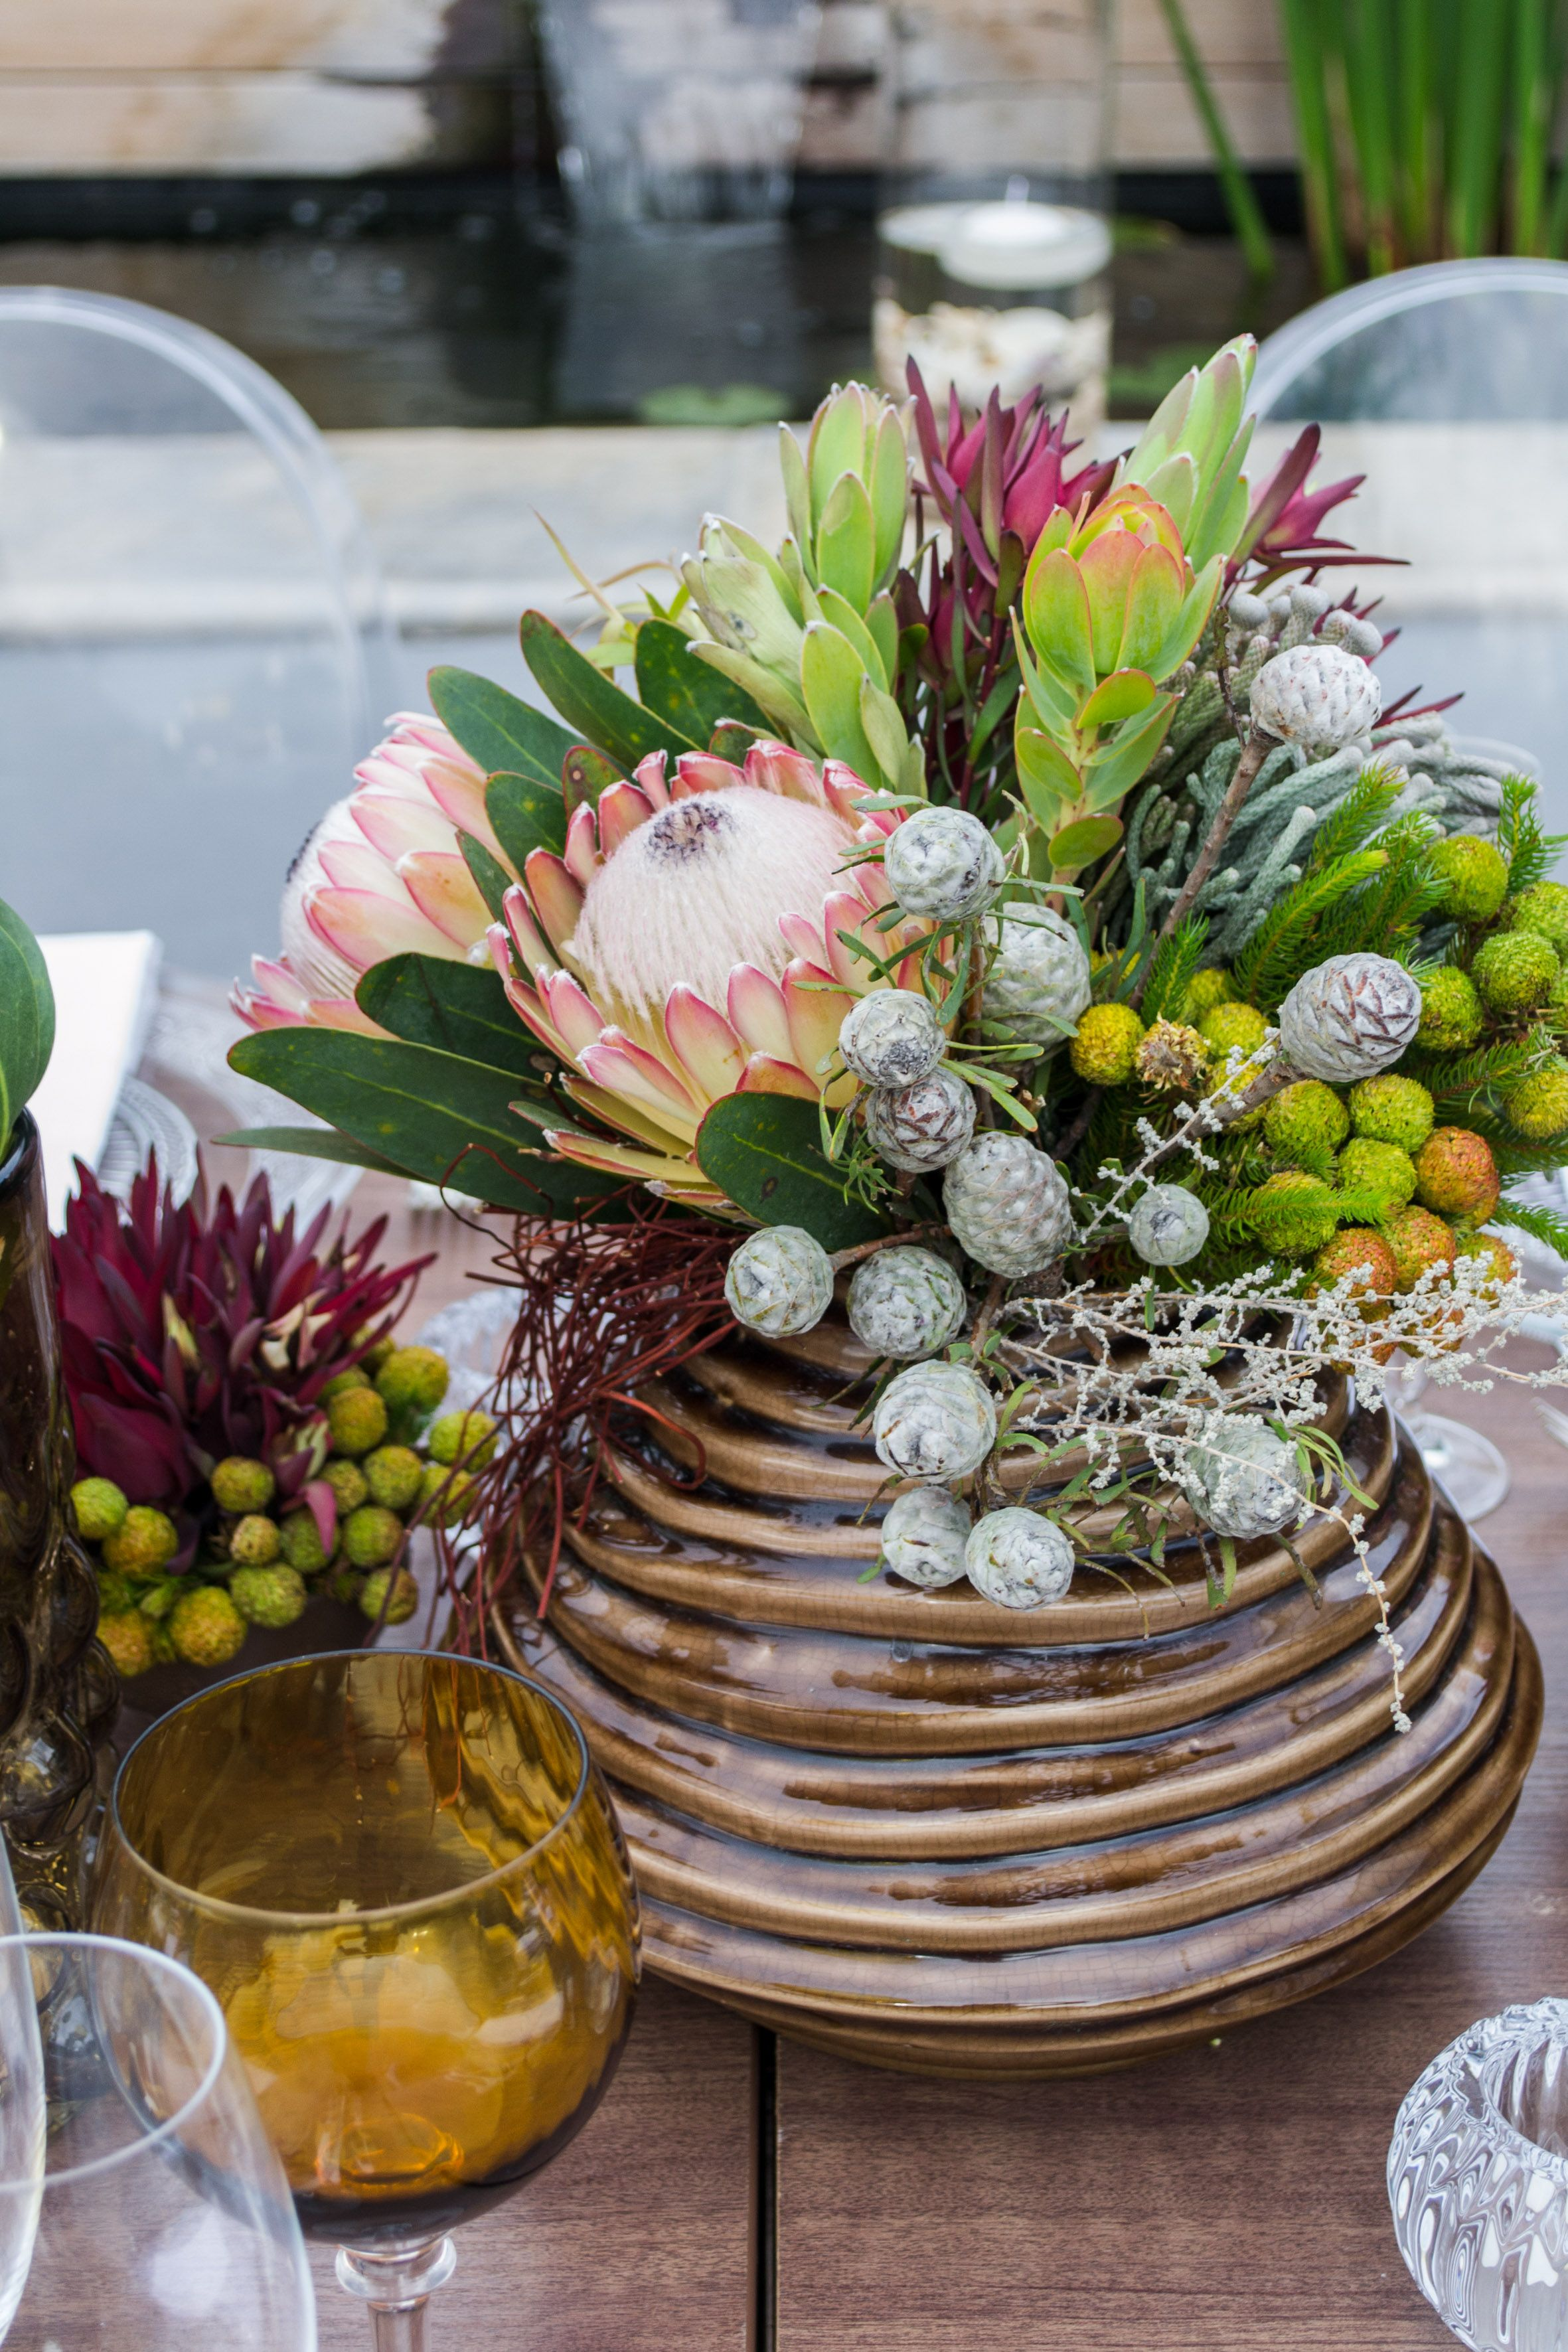 Traditional South African Fynbos With Protea Flower As A Floral